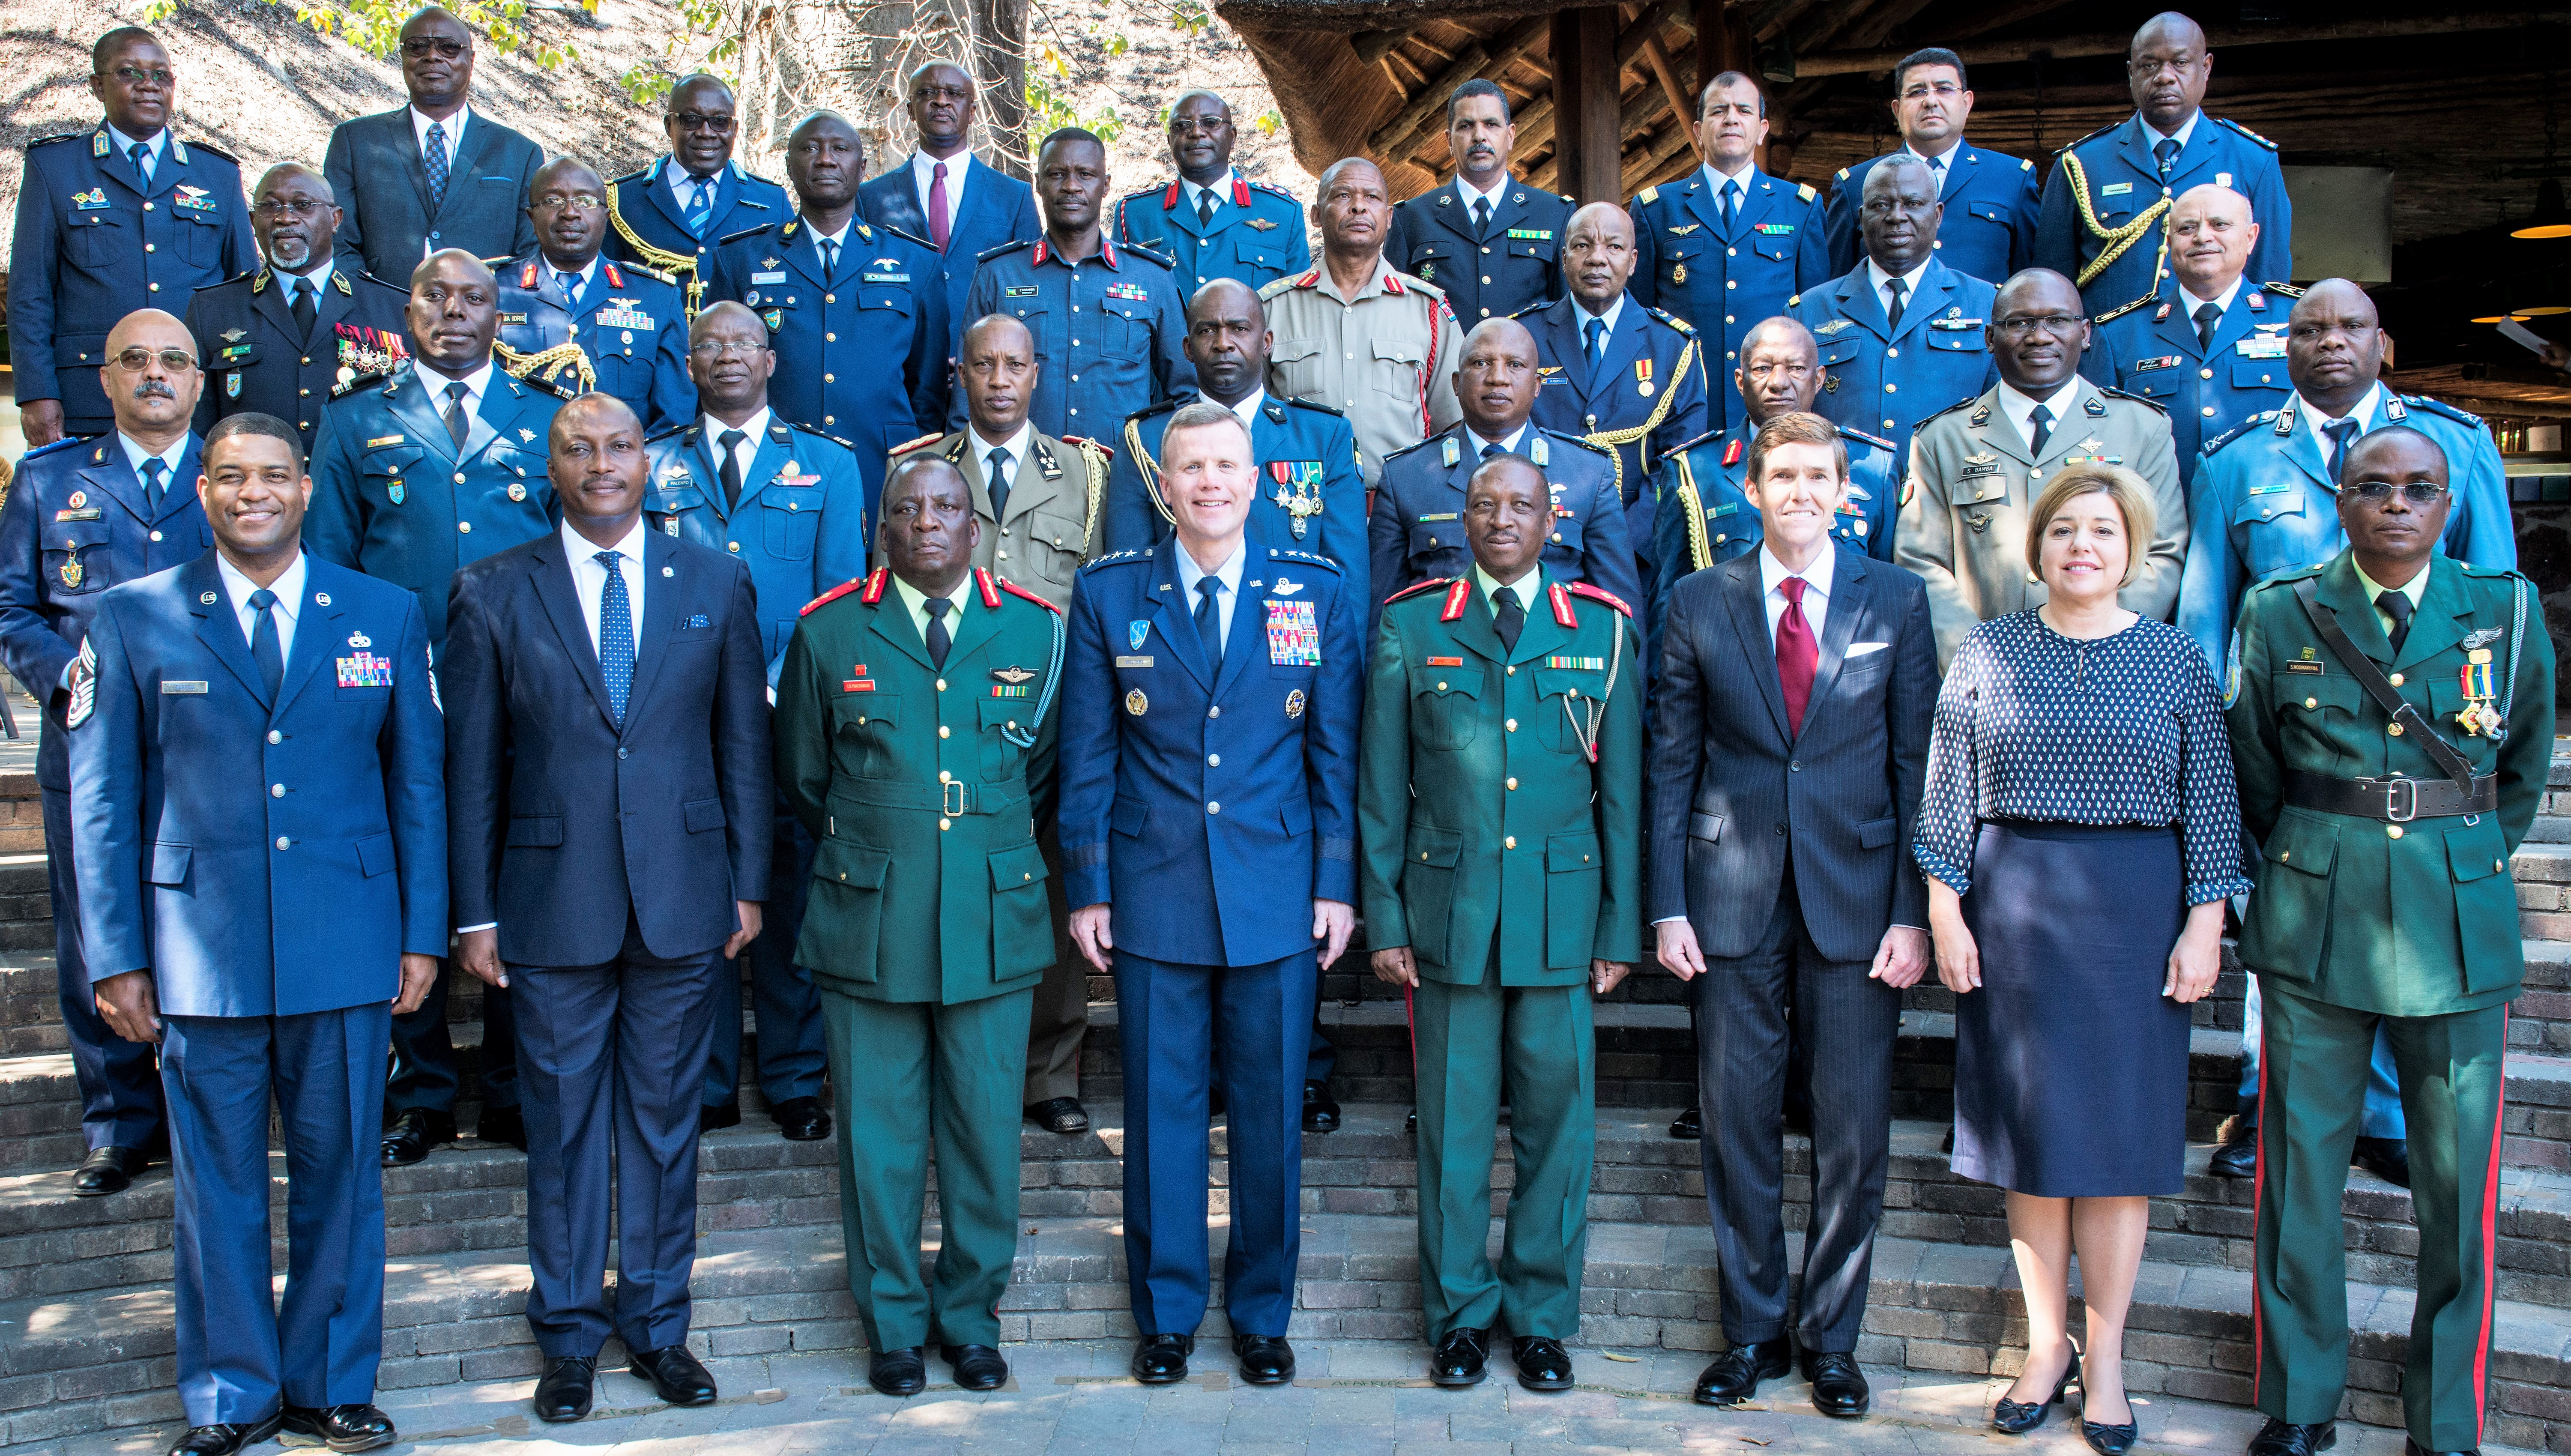 Air chiefs attending the 2017 African Air Chiefs Symposium pose for a group photo in Kasane, Botswana on May 16, 2017. The nations in attendance are Angola, Benin, Botswana, Burkino Faso, Burundi, Chad, Democratic Republic of the Congo, Gabon, Ghana, Keyna, Lesotho, Madagascar, Mali, Malawi, Mauritania, Morocco, Mozambique, Nigeria, Rwanda, Senegal, Seychelles, South Africa, Swaziland, Tanzania, Togo, Tunisa, Uganda, United States of America and Zambia. A representative from the African Union was also in attendance. (U.S. Air Force photo by Staff Sgt. Krystal Ardrey/Released)